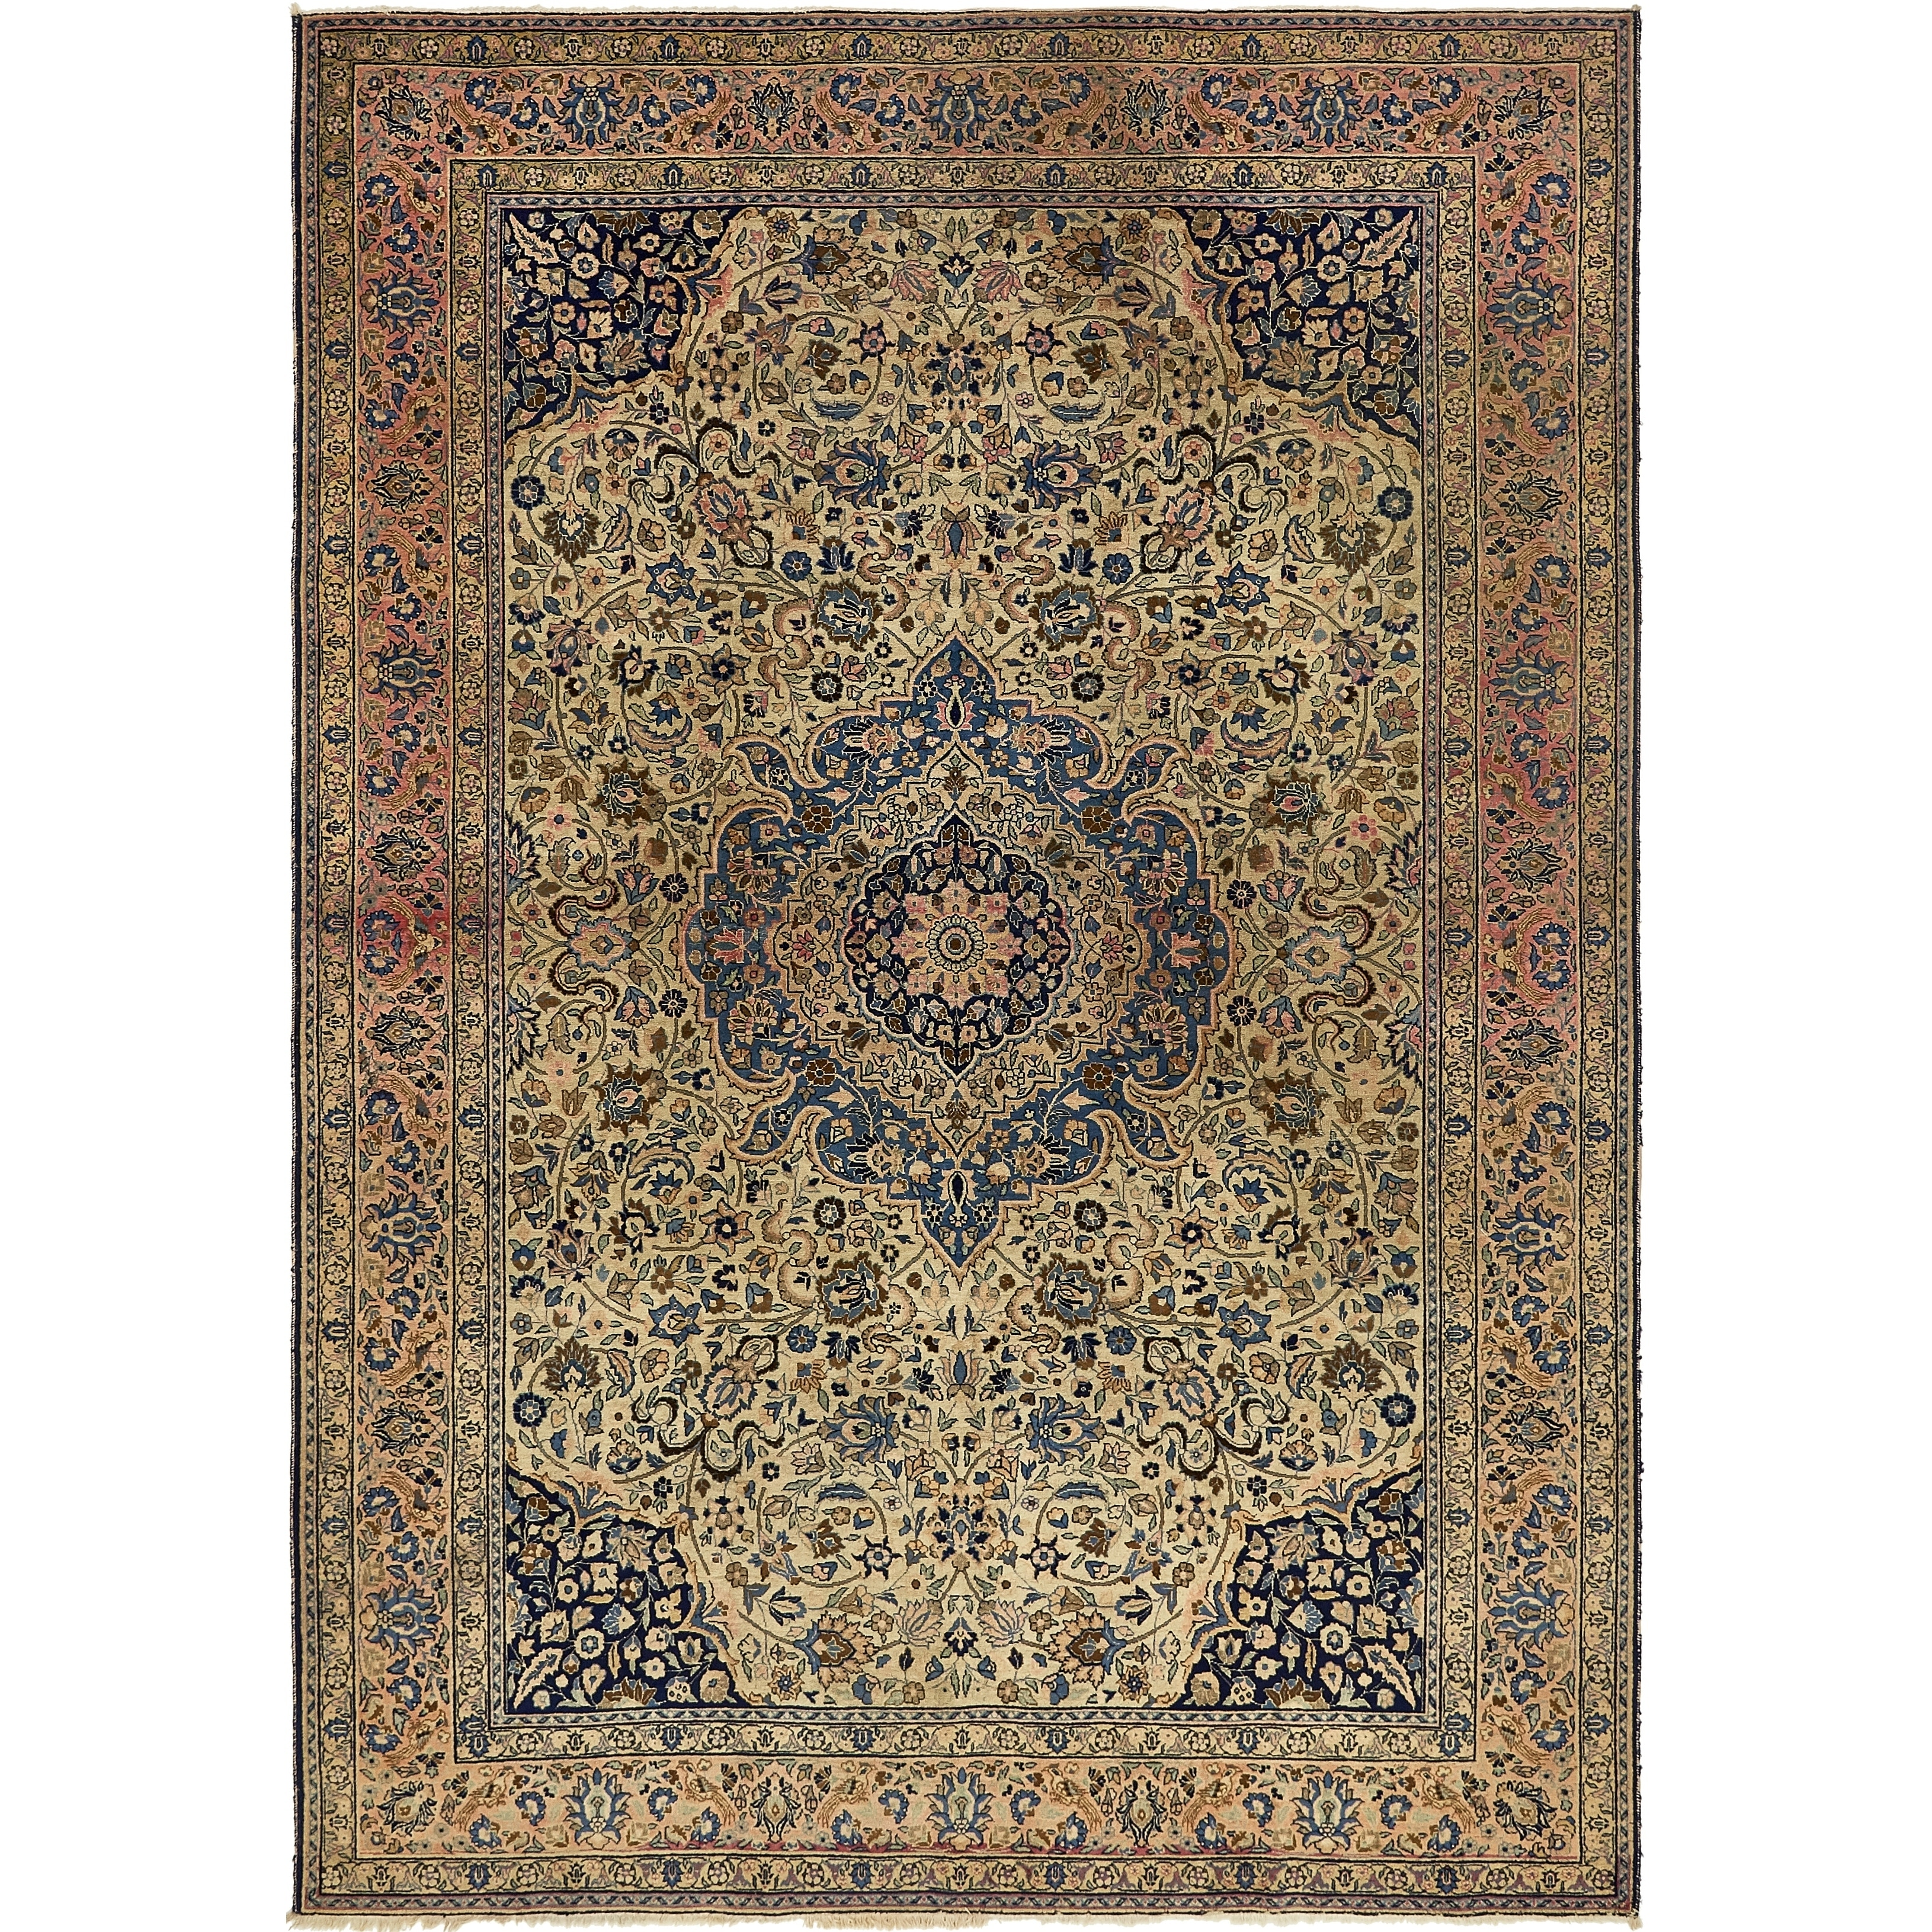 Hand Knotted Kashan Antique Wool Area Rug - 8' 2 x 11' 8 (Beige - 8' 2 x 11' 8)